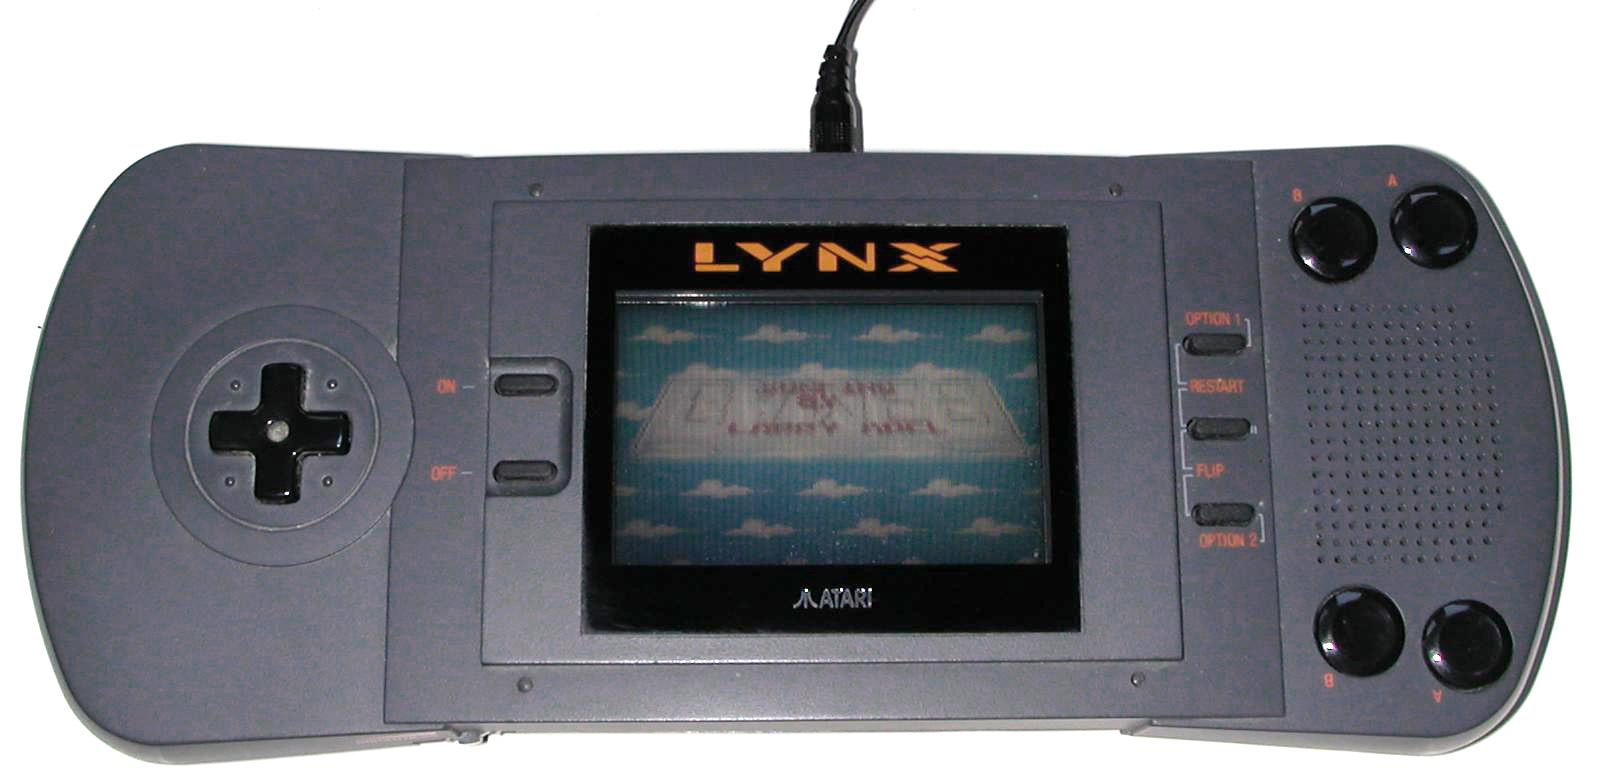 Lynx handheld console game on video game consoles